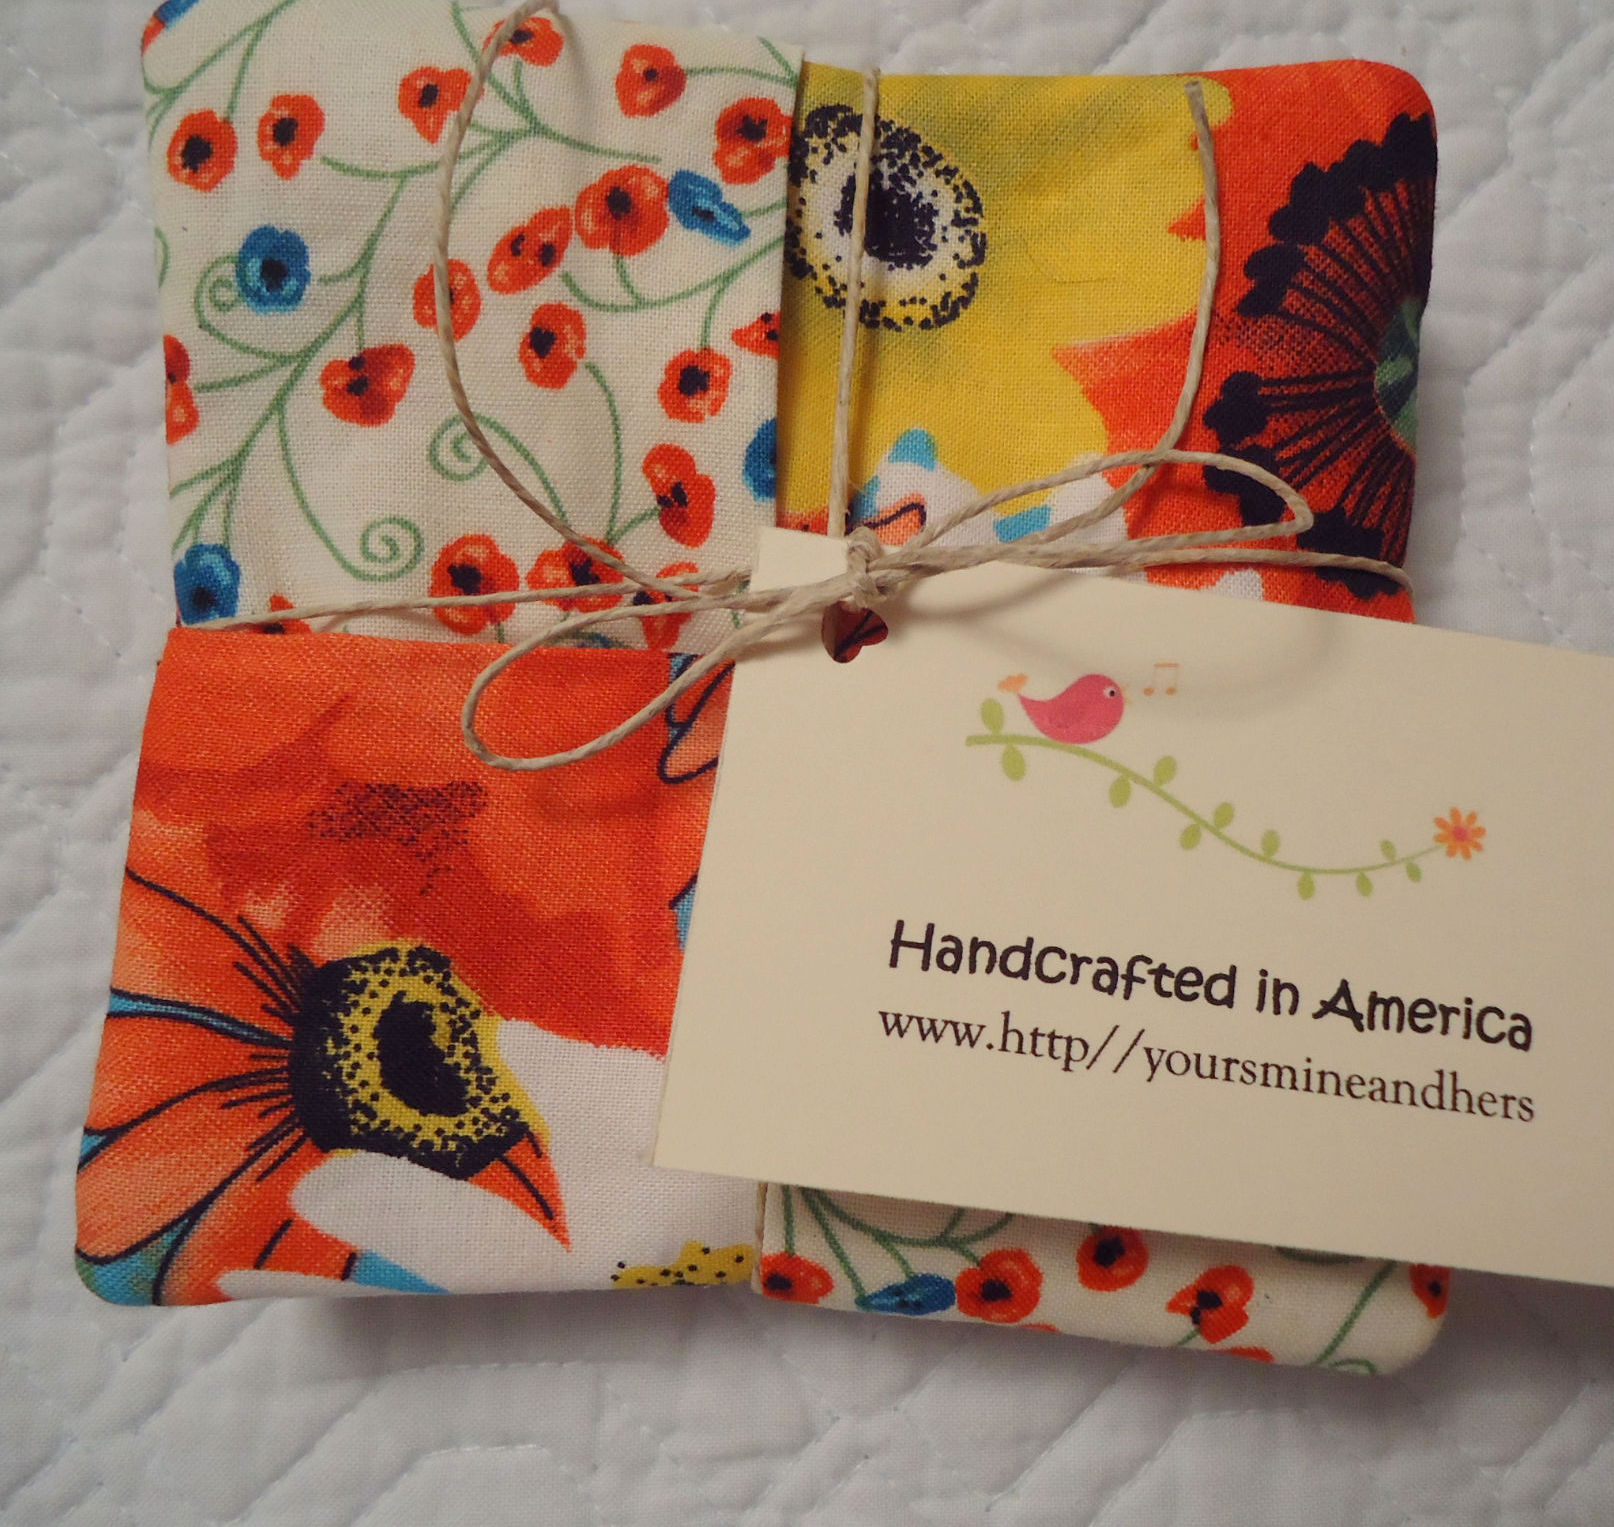 Handcrafted in America, one-of-a-kind, absorbent, best coasters ever, mug rugs